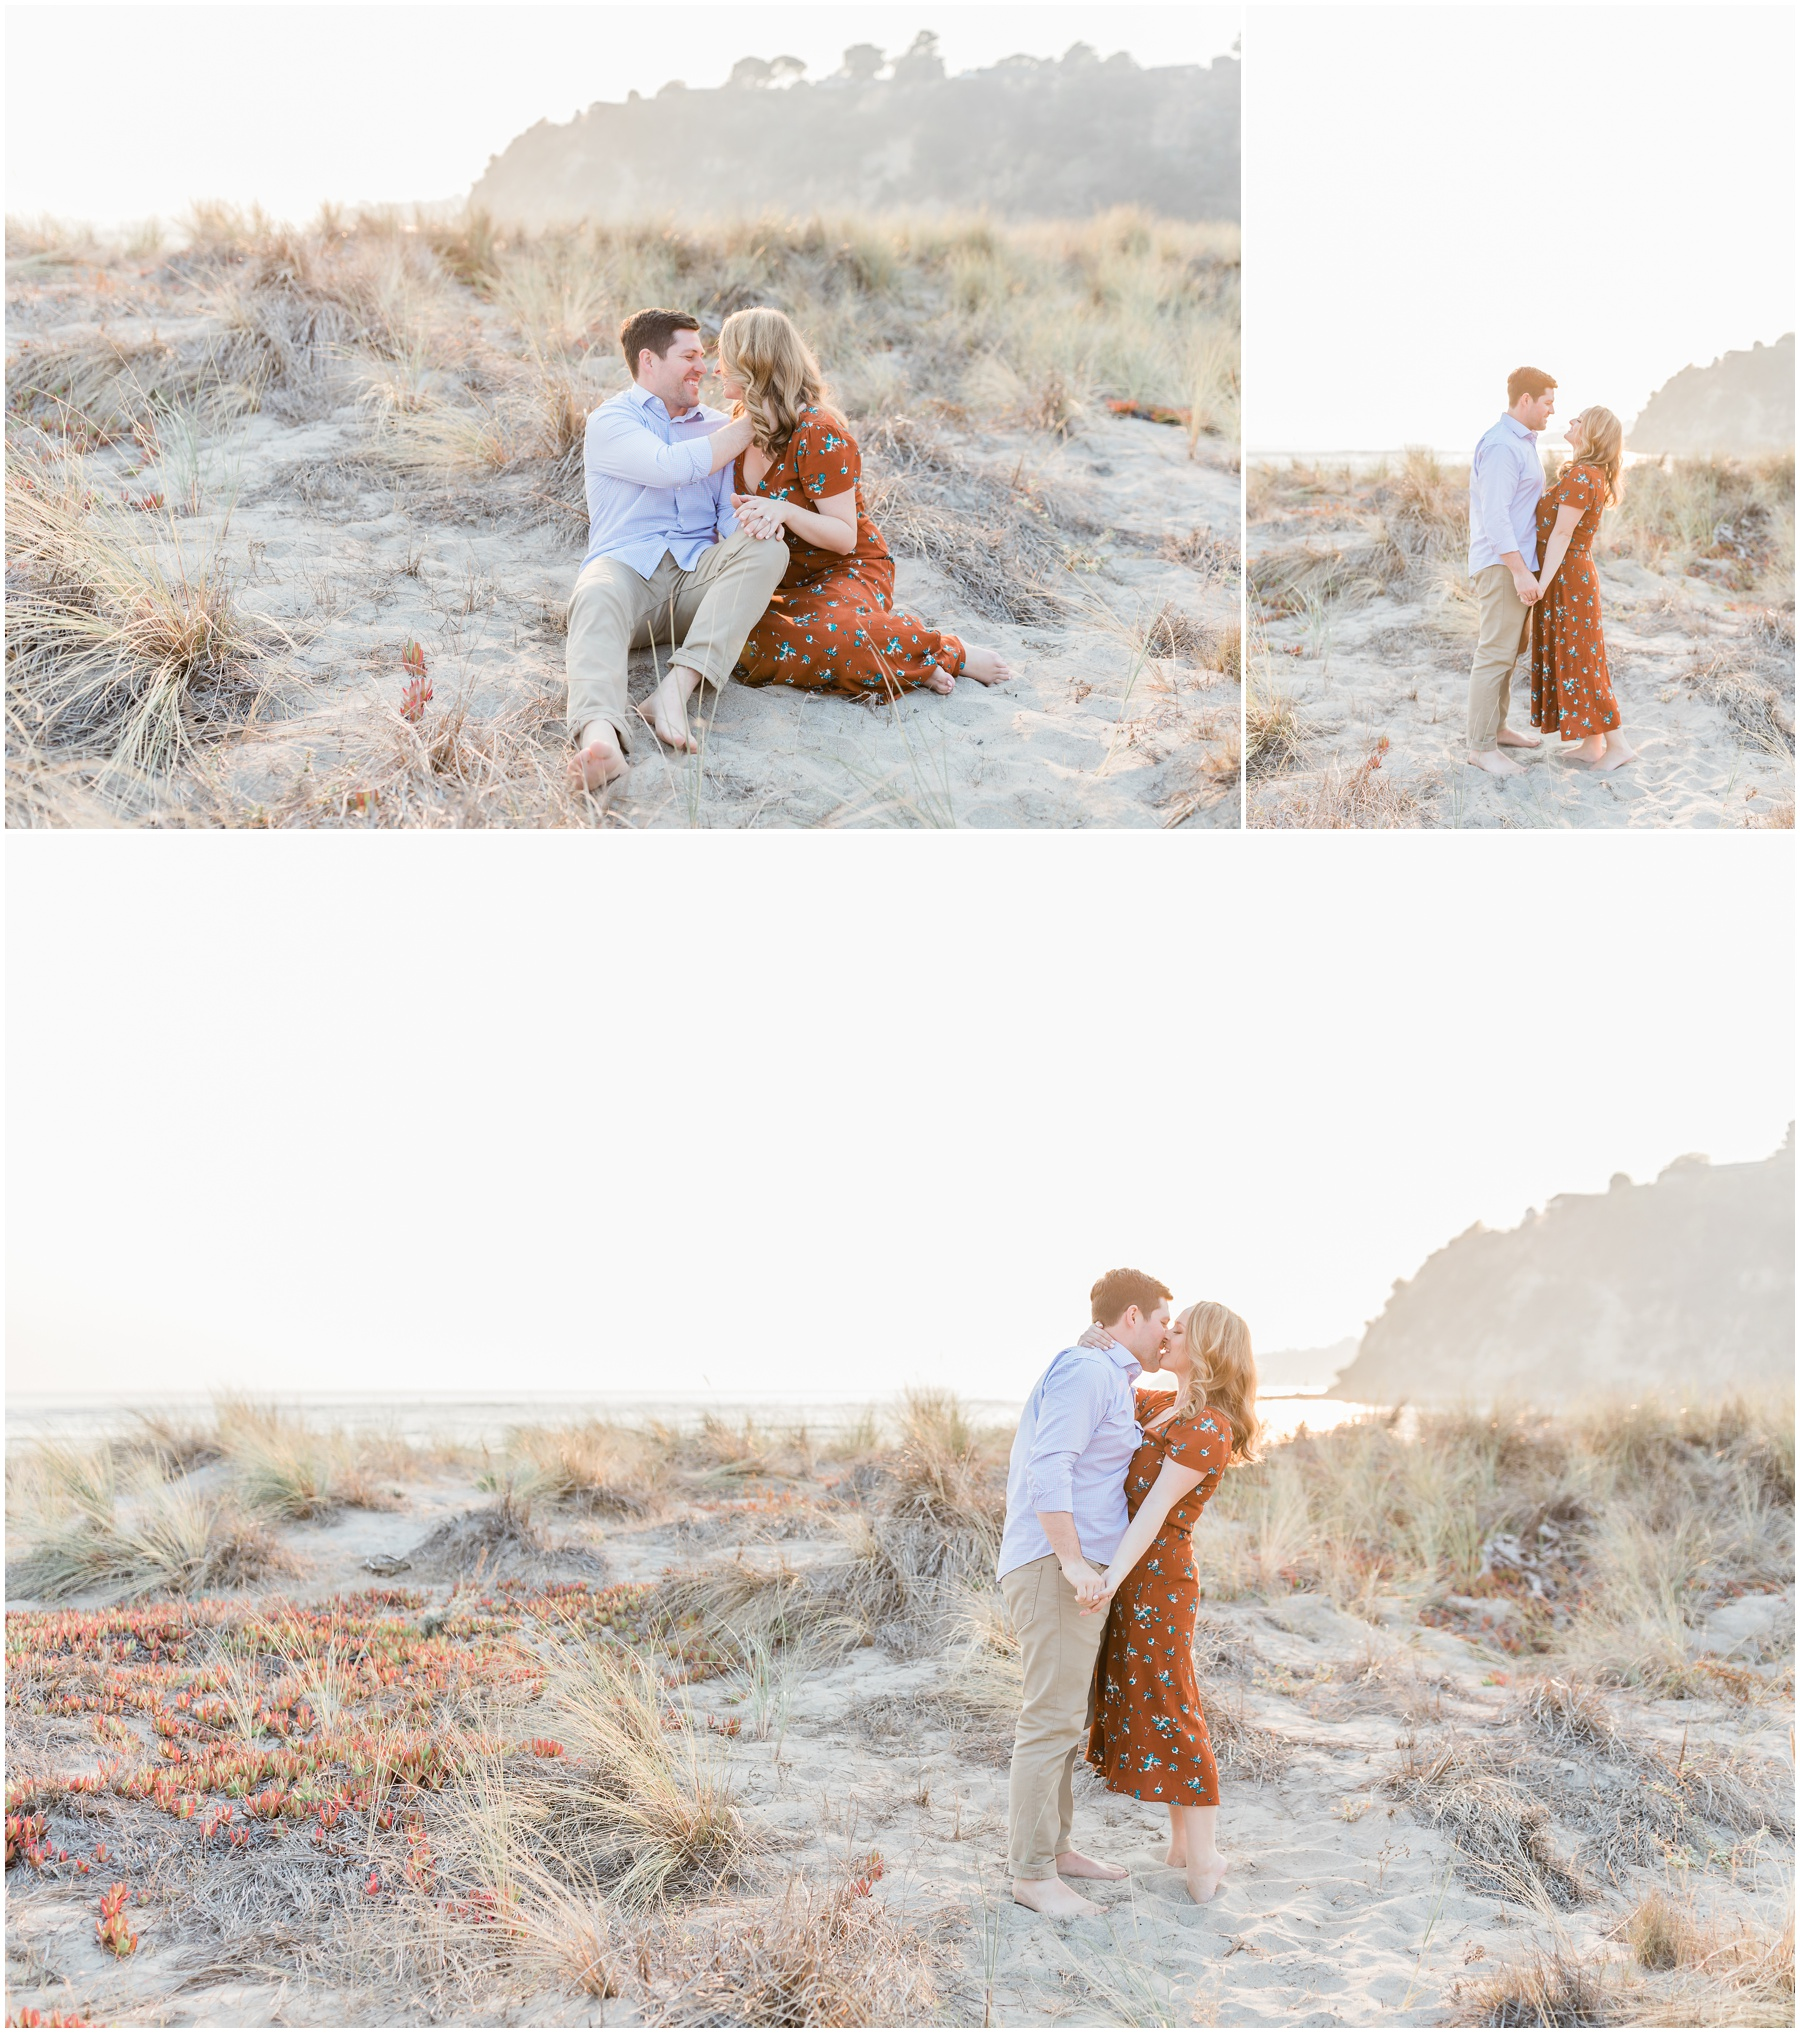 Sunset Beach Engagement Portrait Session by KCM Photography, a fine art portrait and wedding photographer serving Northern California and based in Lodi, CA